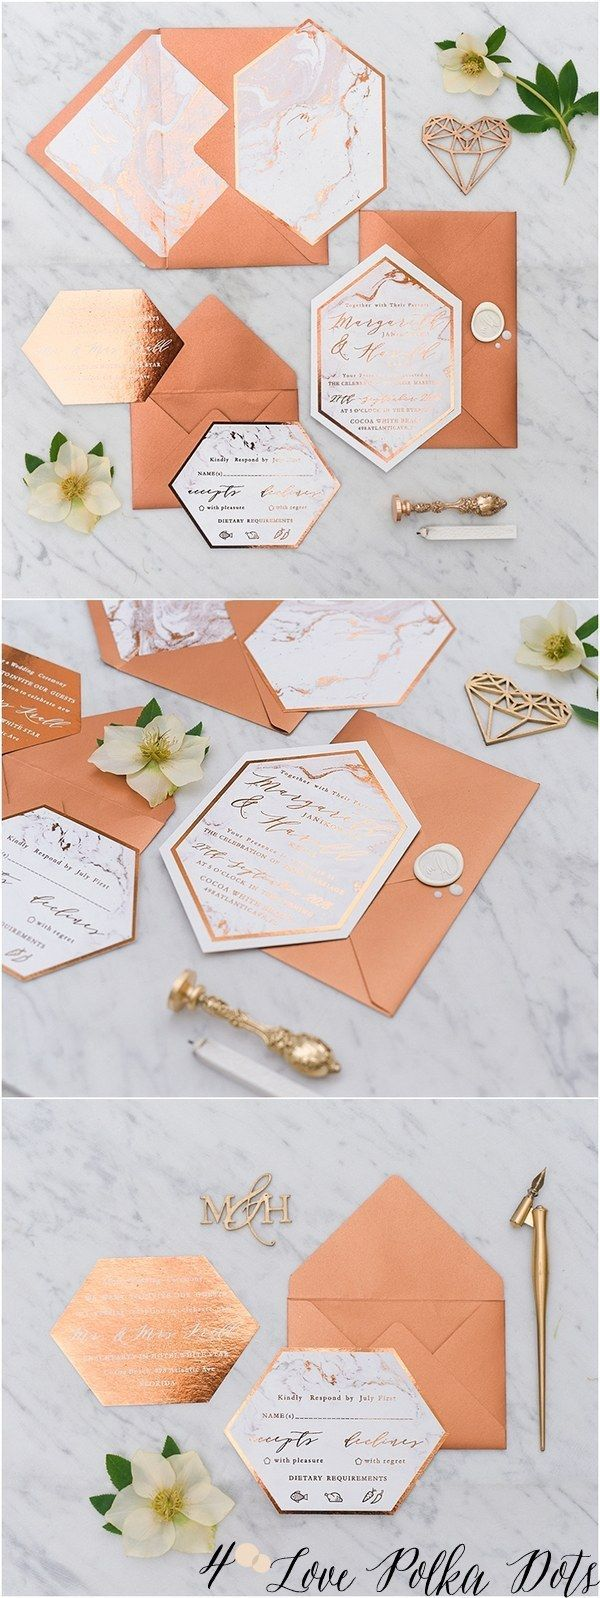 Copper & marble wedding invitations #copperwedding #weddingideas #glitter